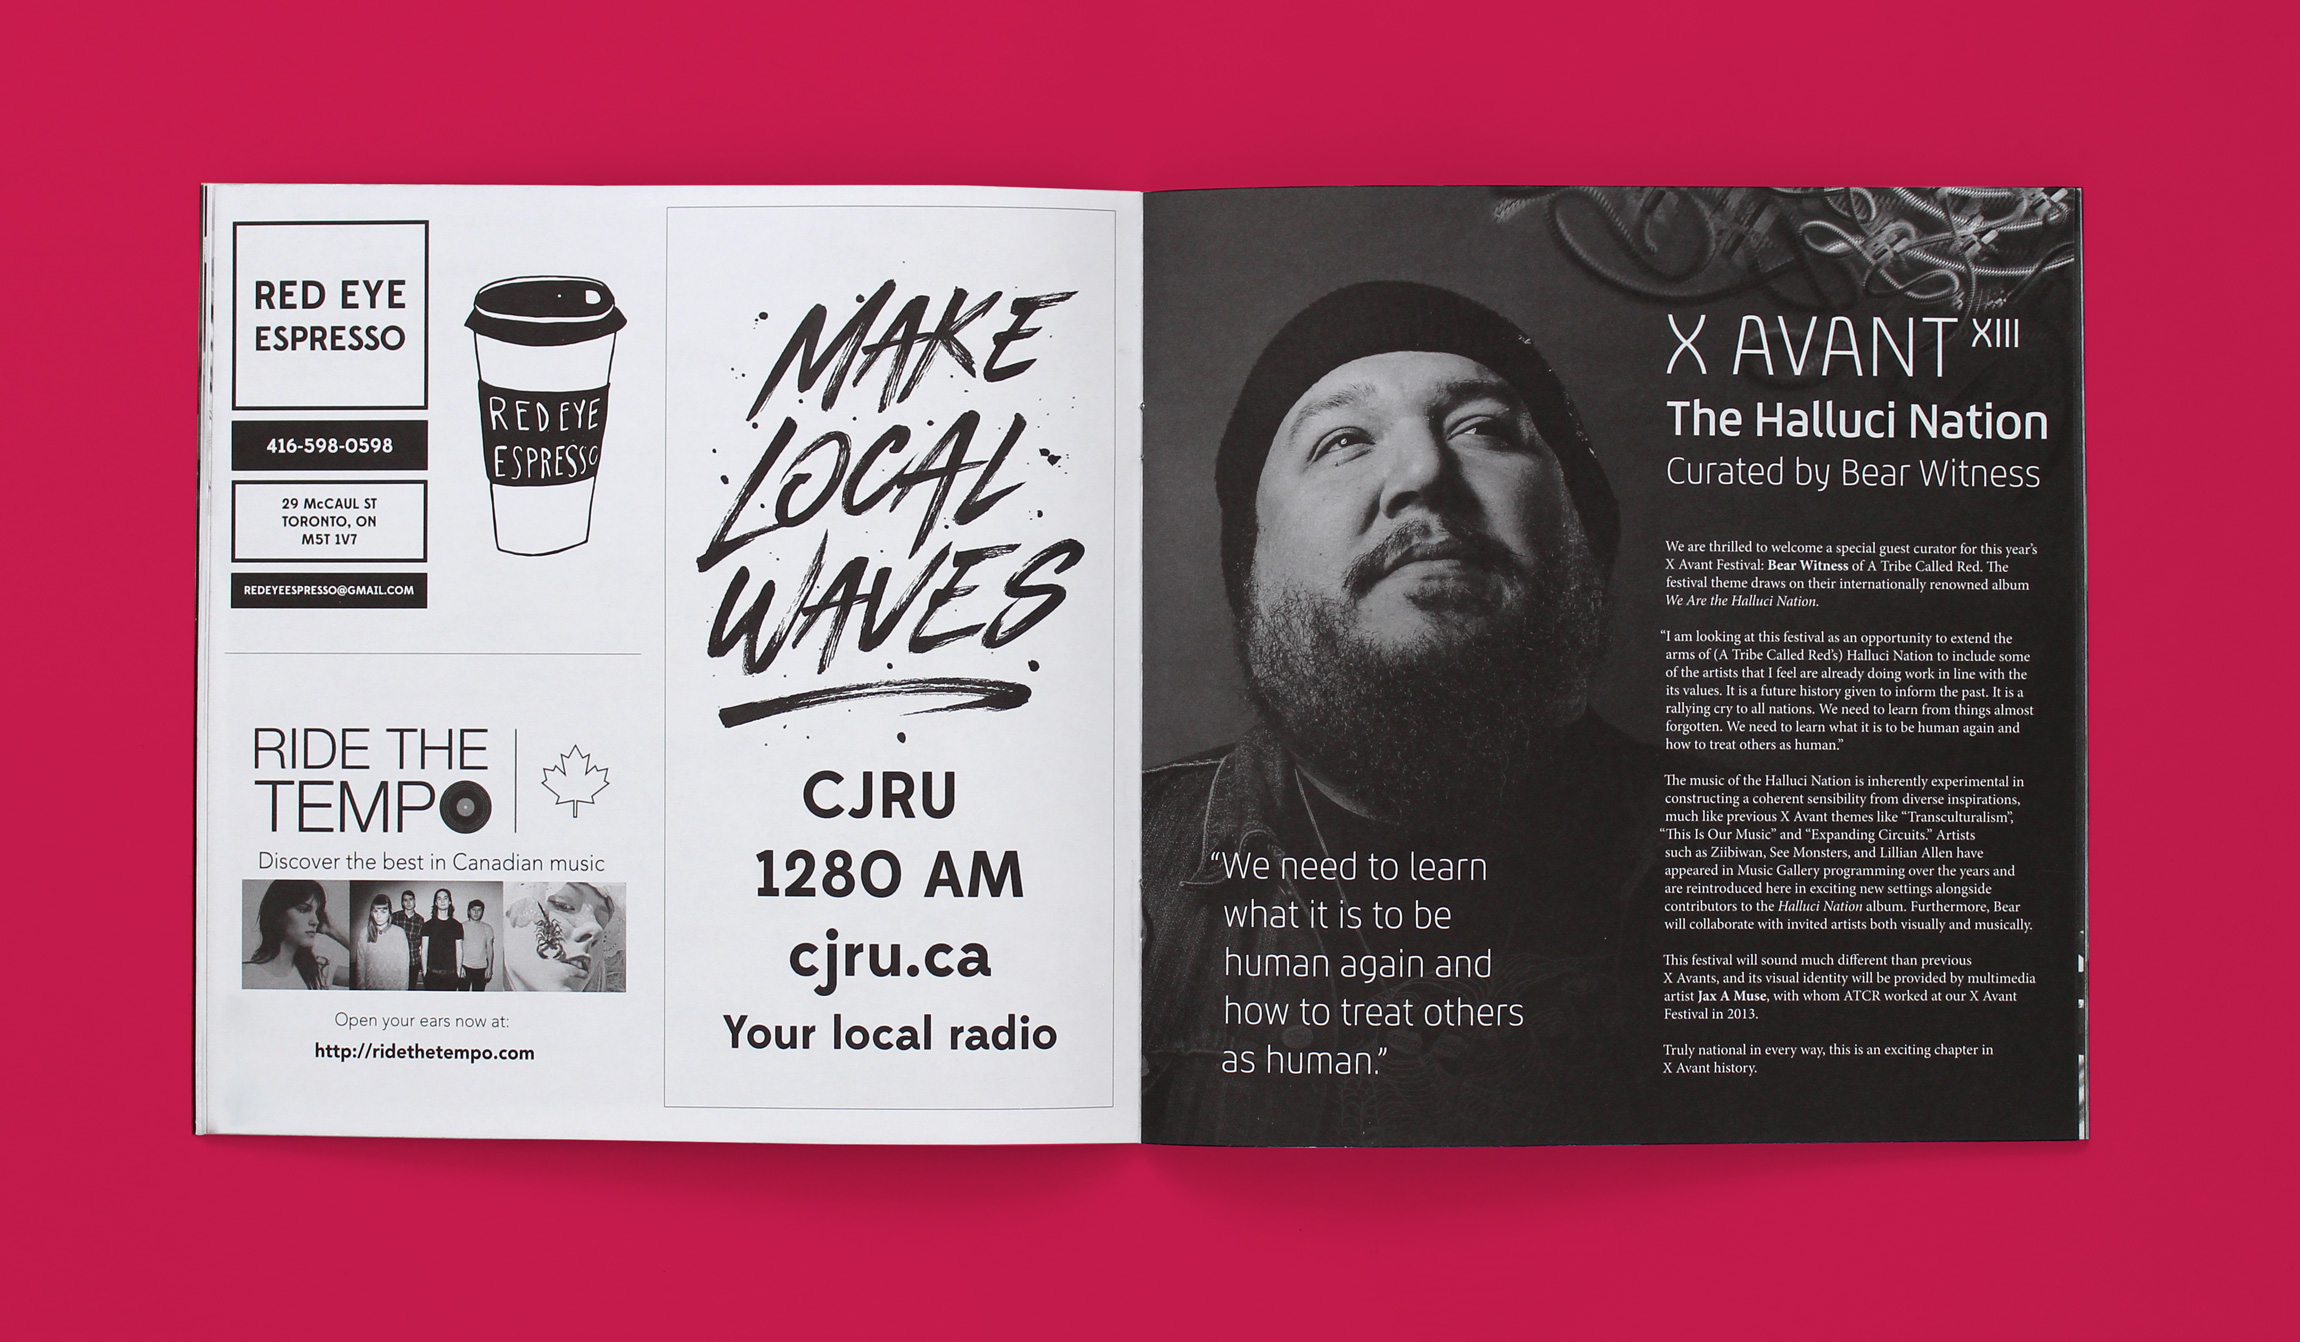 Sample spread from winter program guide. The right page shows a statement and photo of Bear Witness from a Tribe Called Red. The left page features ads from Red Eye Espresso, Ride the Tempo and Make Local Waves